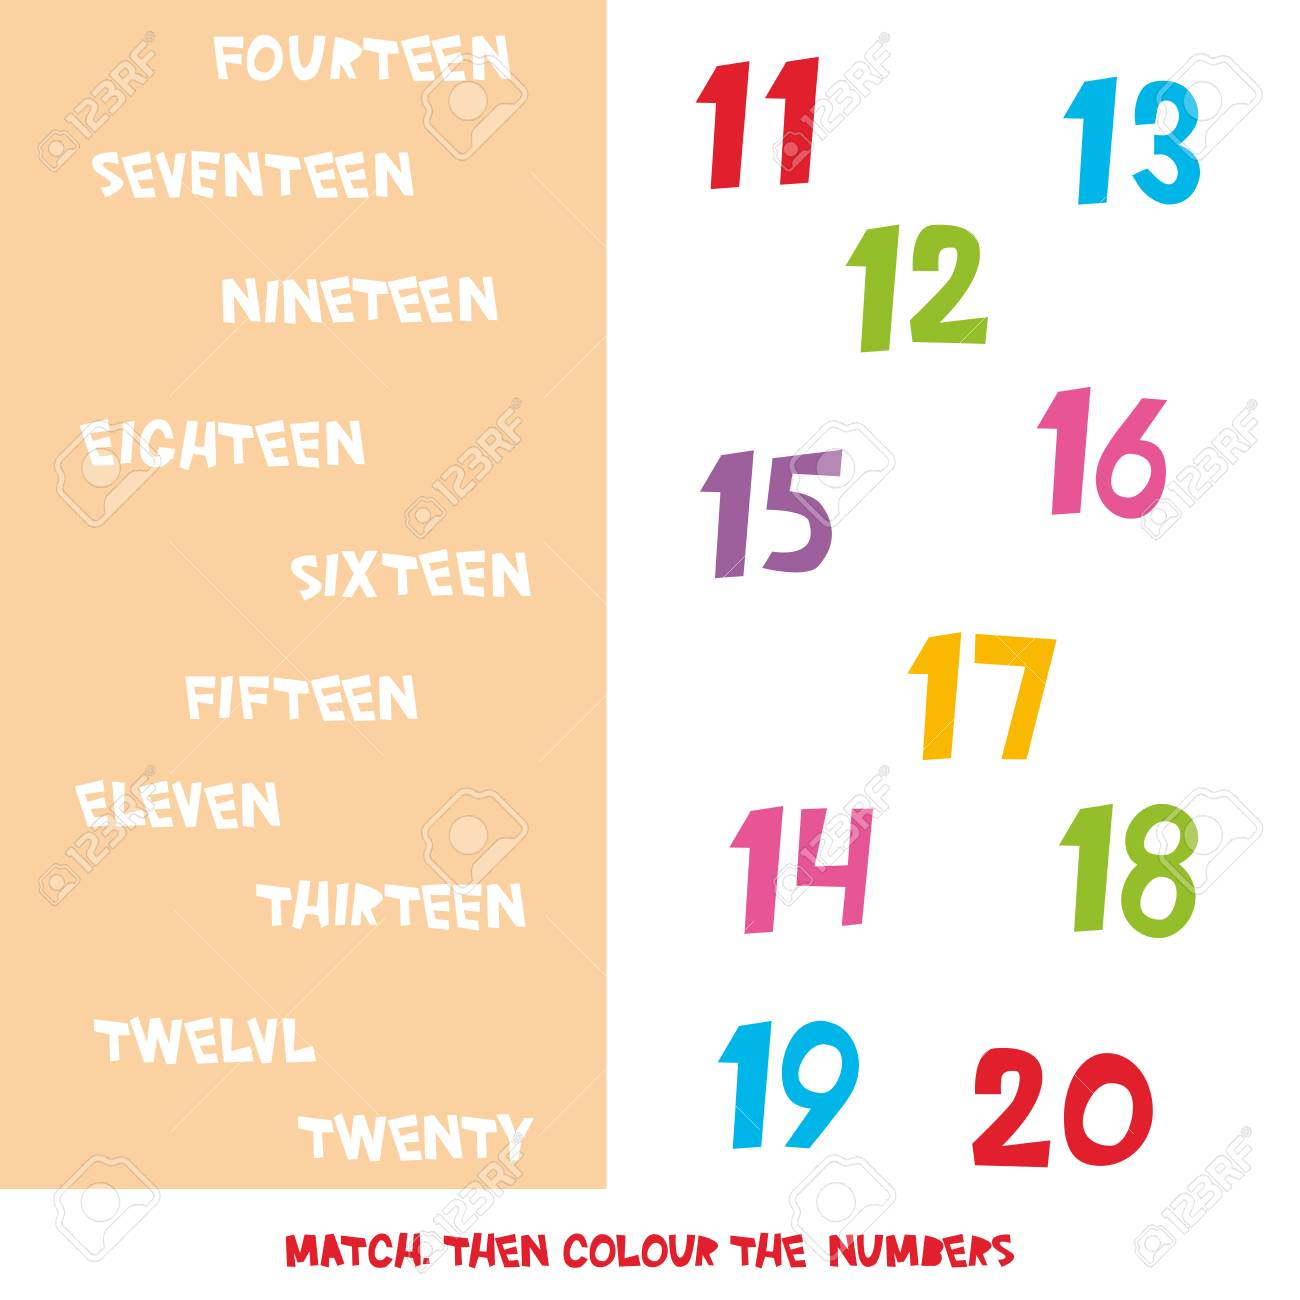 Match Then Colour The Numbers 11 To 20  Kids Words Learning Game